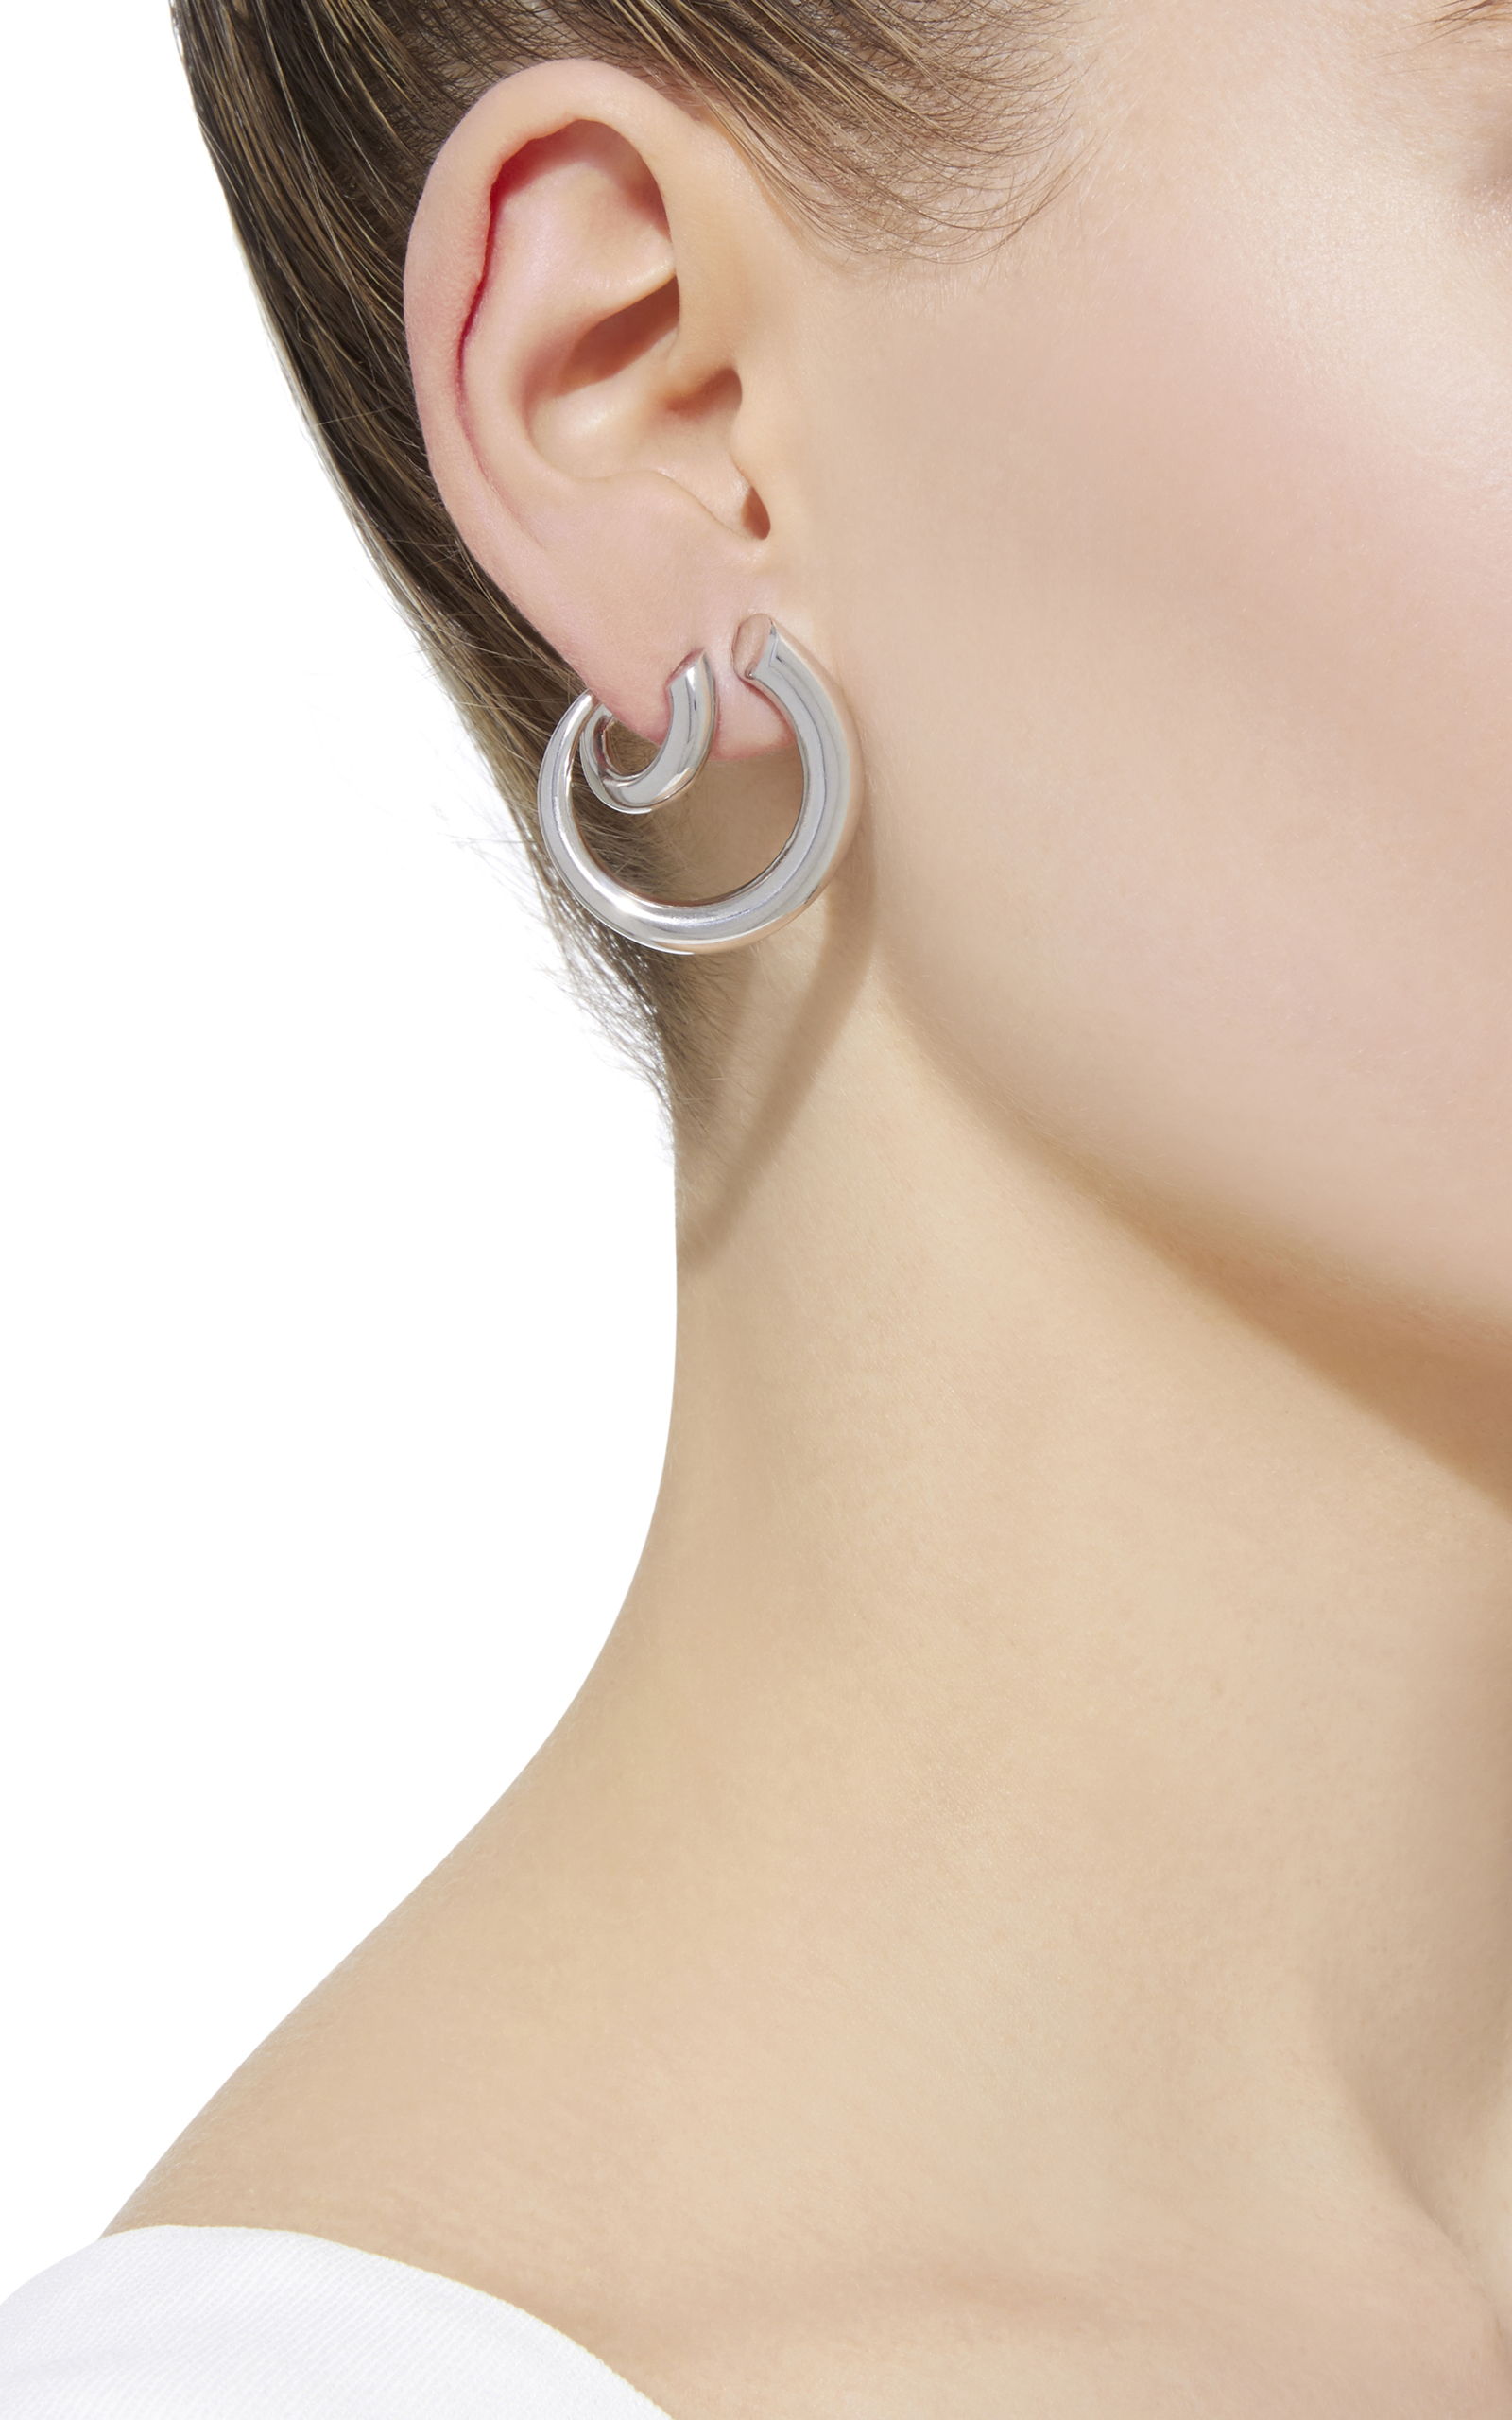 63c1f8dda Charlotte ChesnaisMonie Small and Large Silver Clip Earrings. CLOSE.  Loading. Loading. Loading